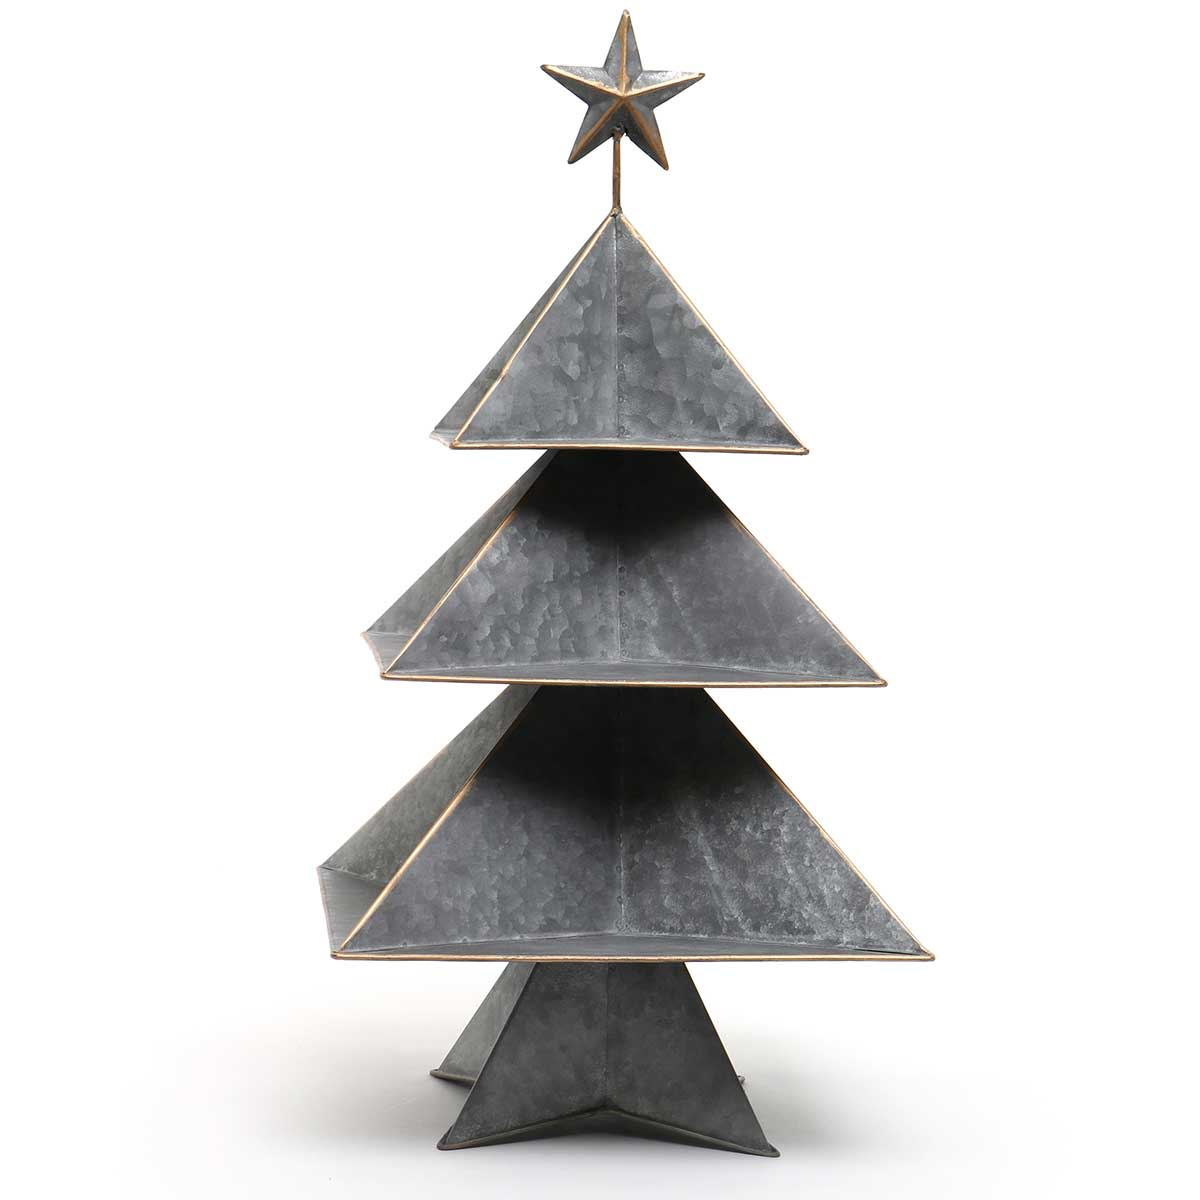 3 TIERED METAL TREE WITH STAR AND